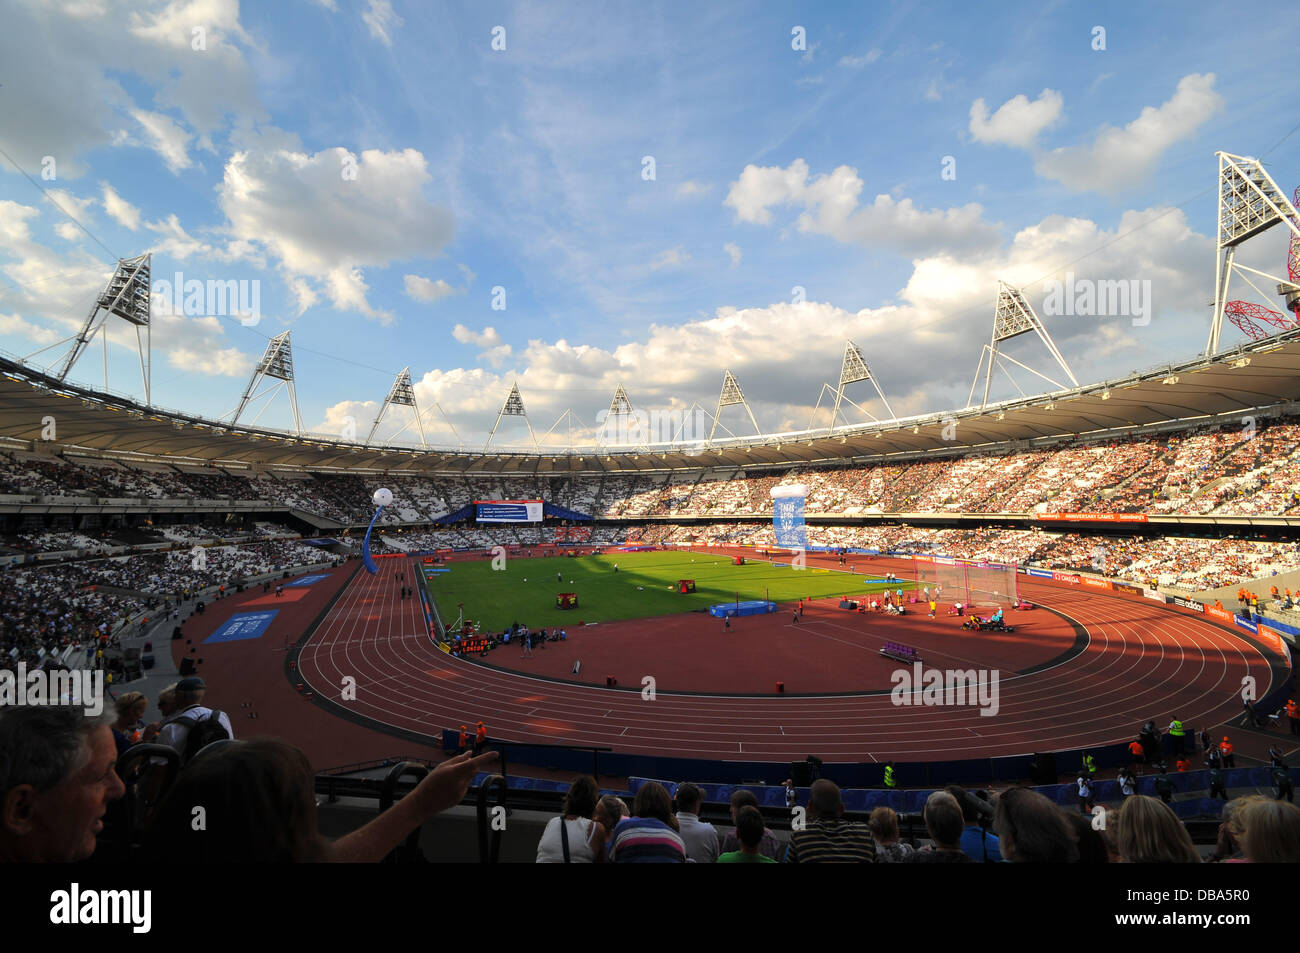 London, UK. 26th July 2013. The Queen Elizabeth Stadium is full before the at the London Anniversary Games Diamond - Stock Image